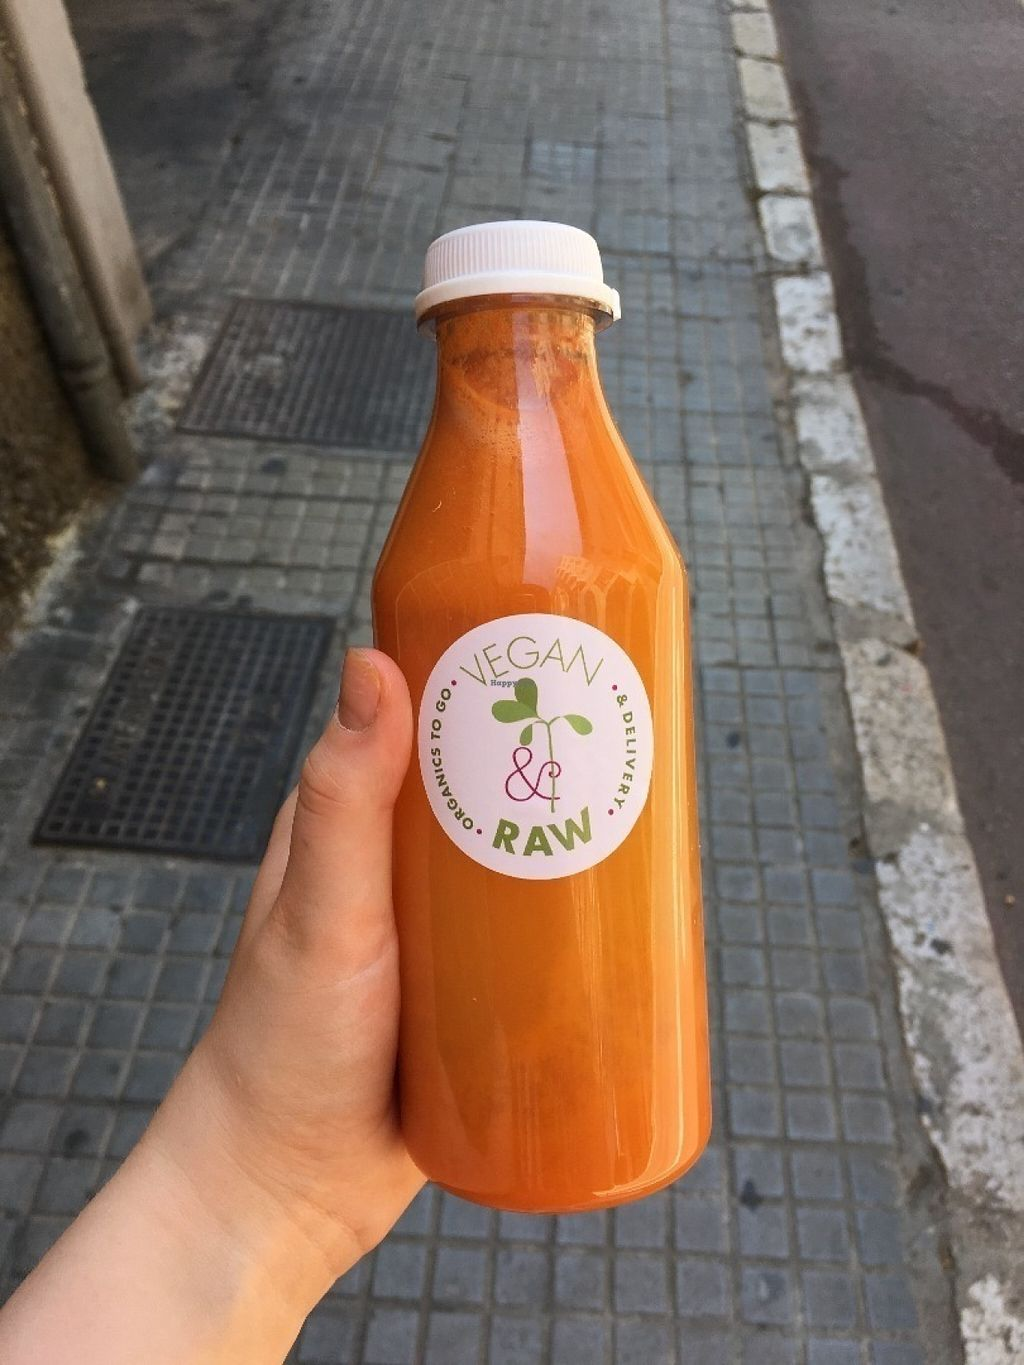 """Photo of Vegan & Raw  by <a href=""""/members/profile/simmiefairy"""">simmiefairy</a> <br/>Juice <br/> July 28, 2016  - <a href='/contact/abuse/image/71625/162859'>Report</a>"""